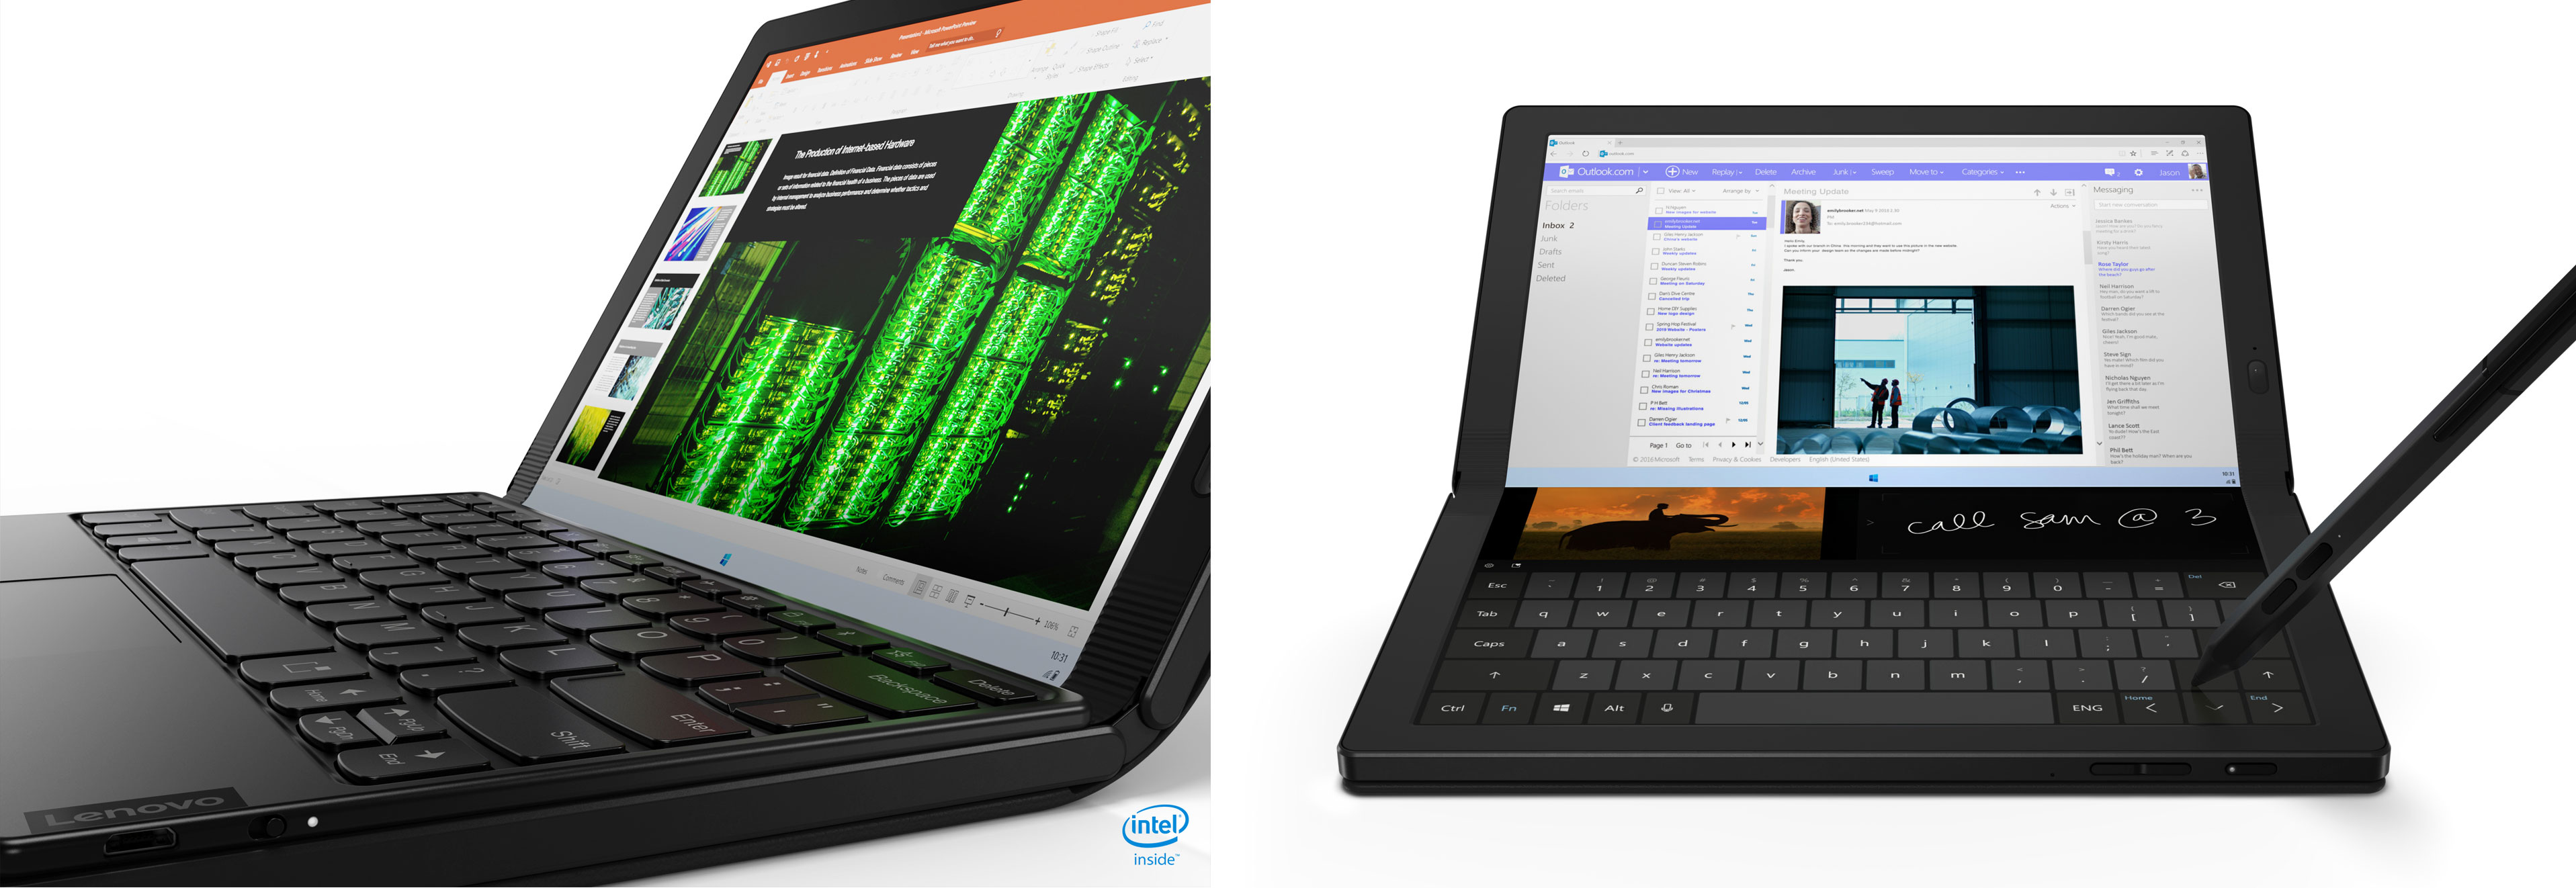 ThinkPad X1 Fold - keyboard and touch-keyboard